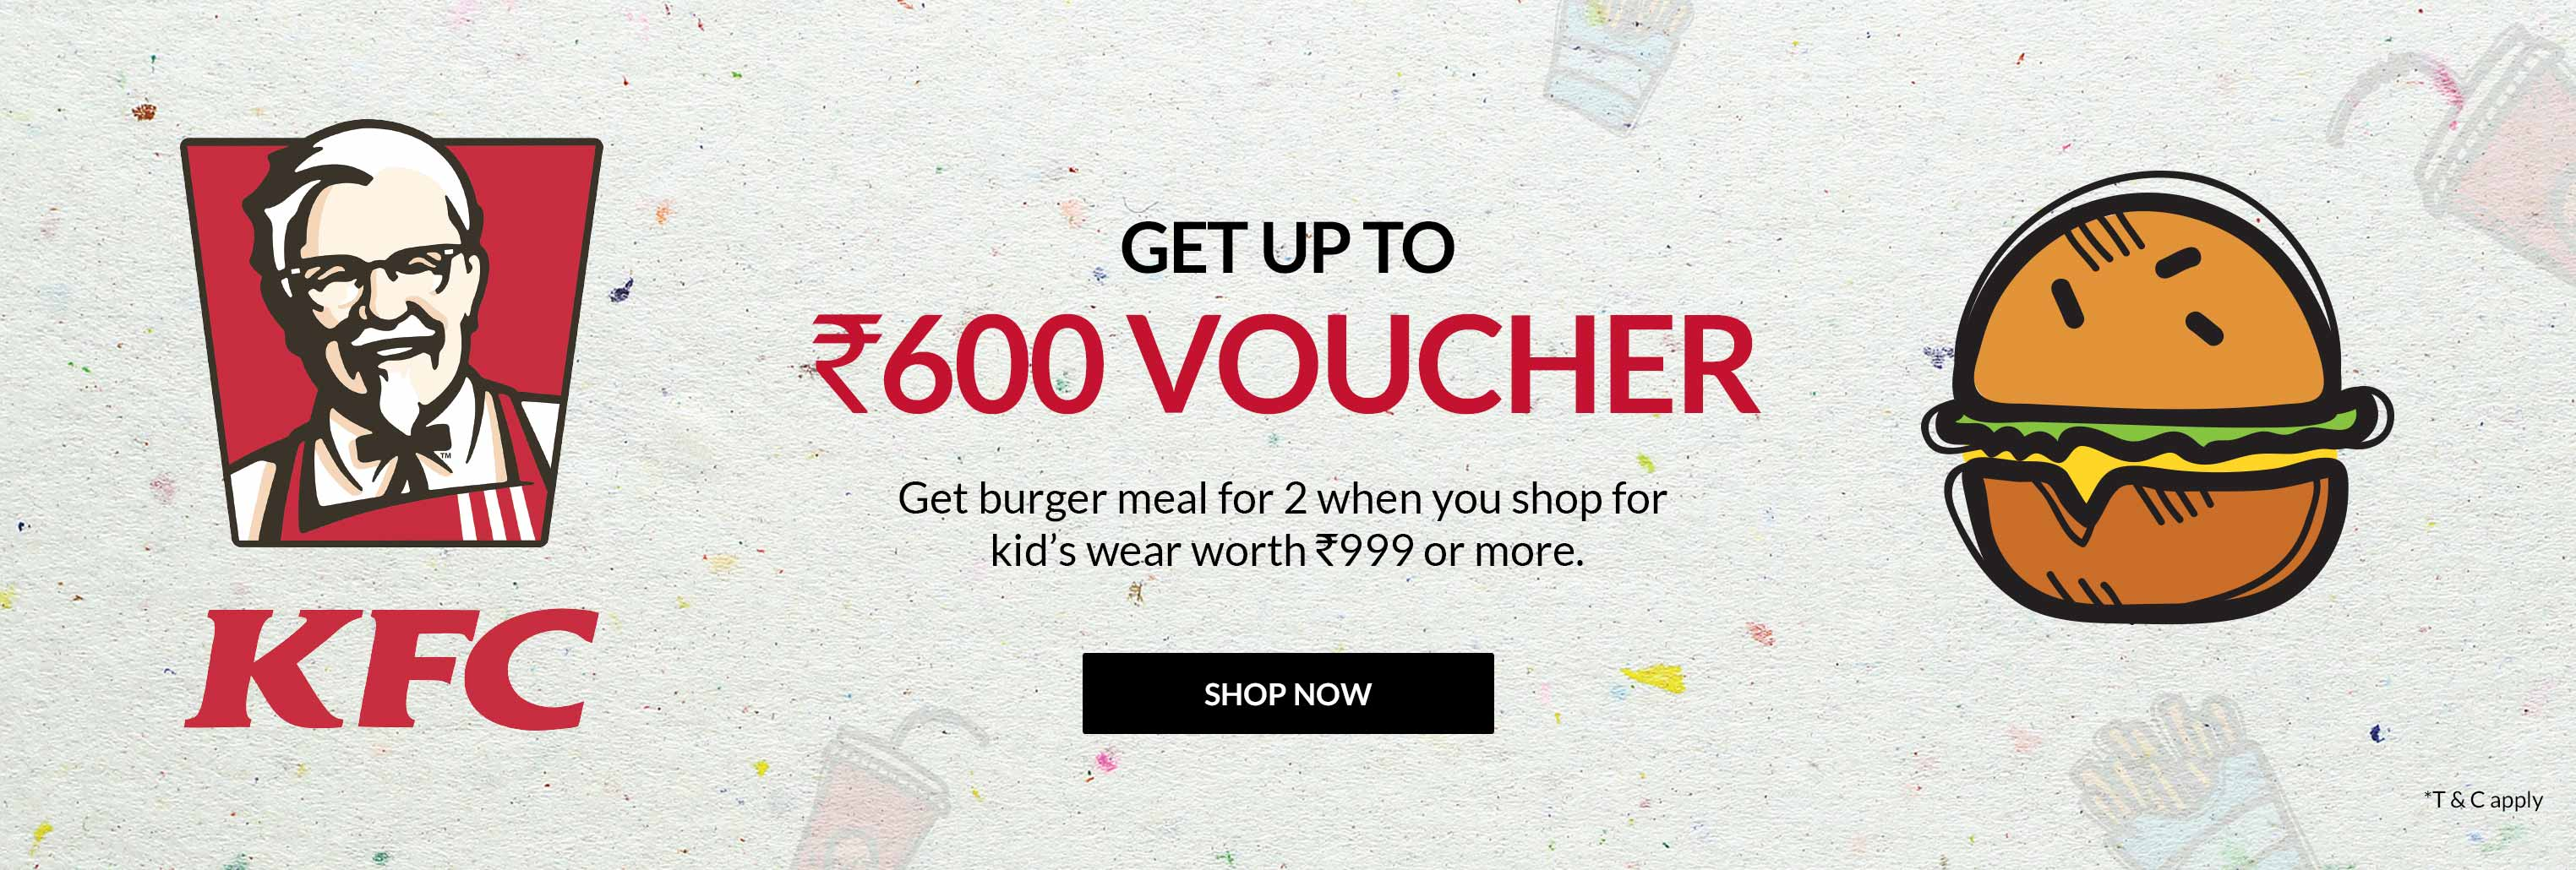 Get Free KFC Voucher up to Rs.600 on Shopping from Max Fashion